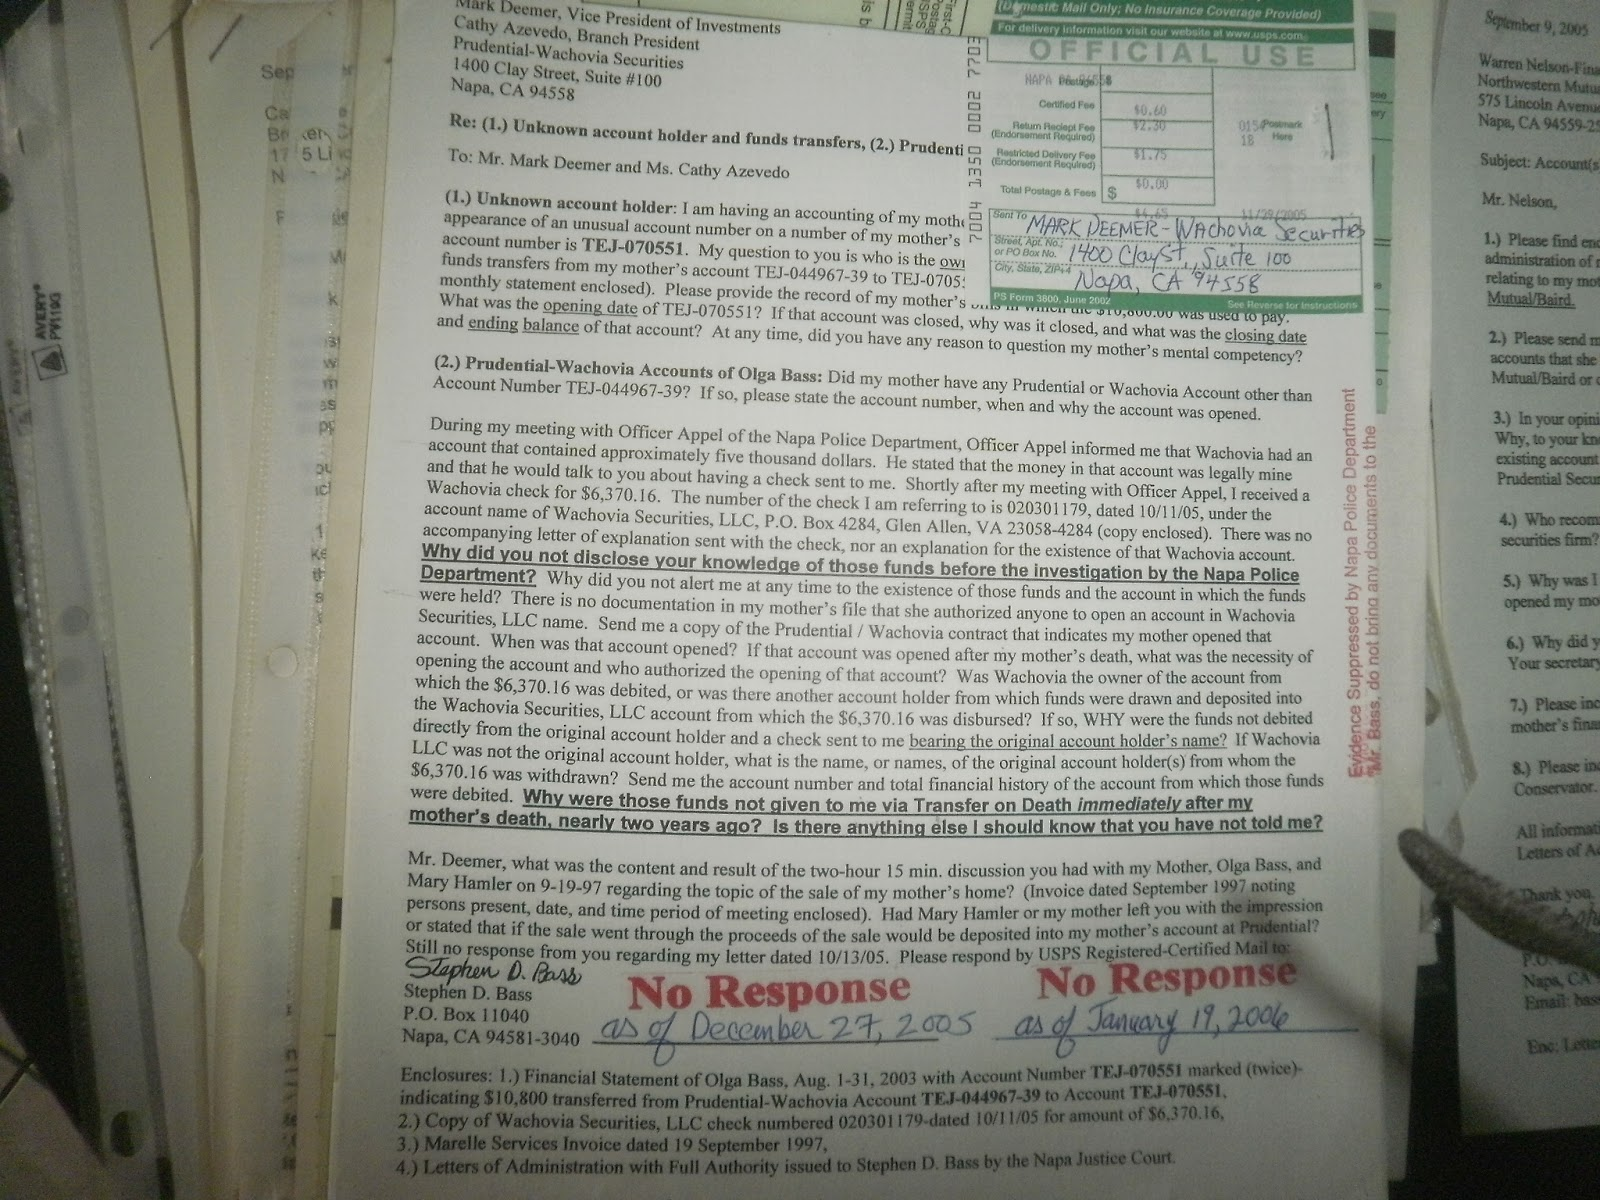 Complaint Letter To Mark Deemer And Cathy Azevedo Prudential